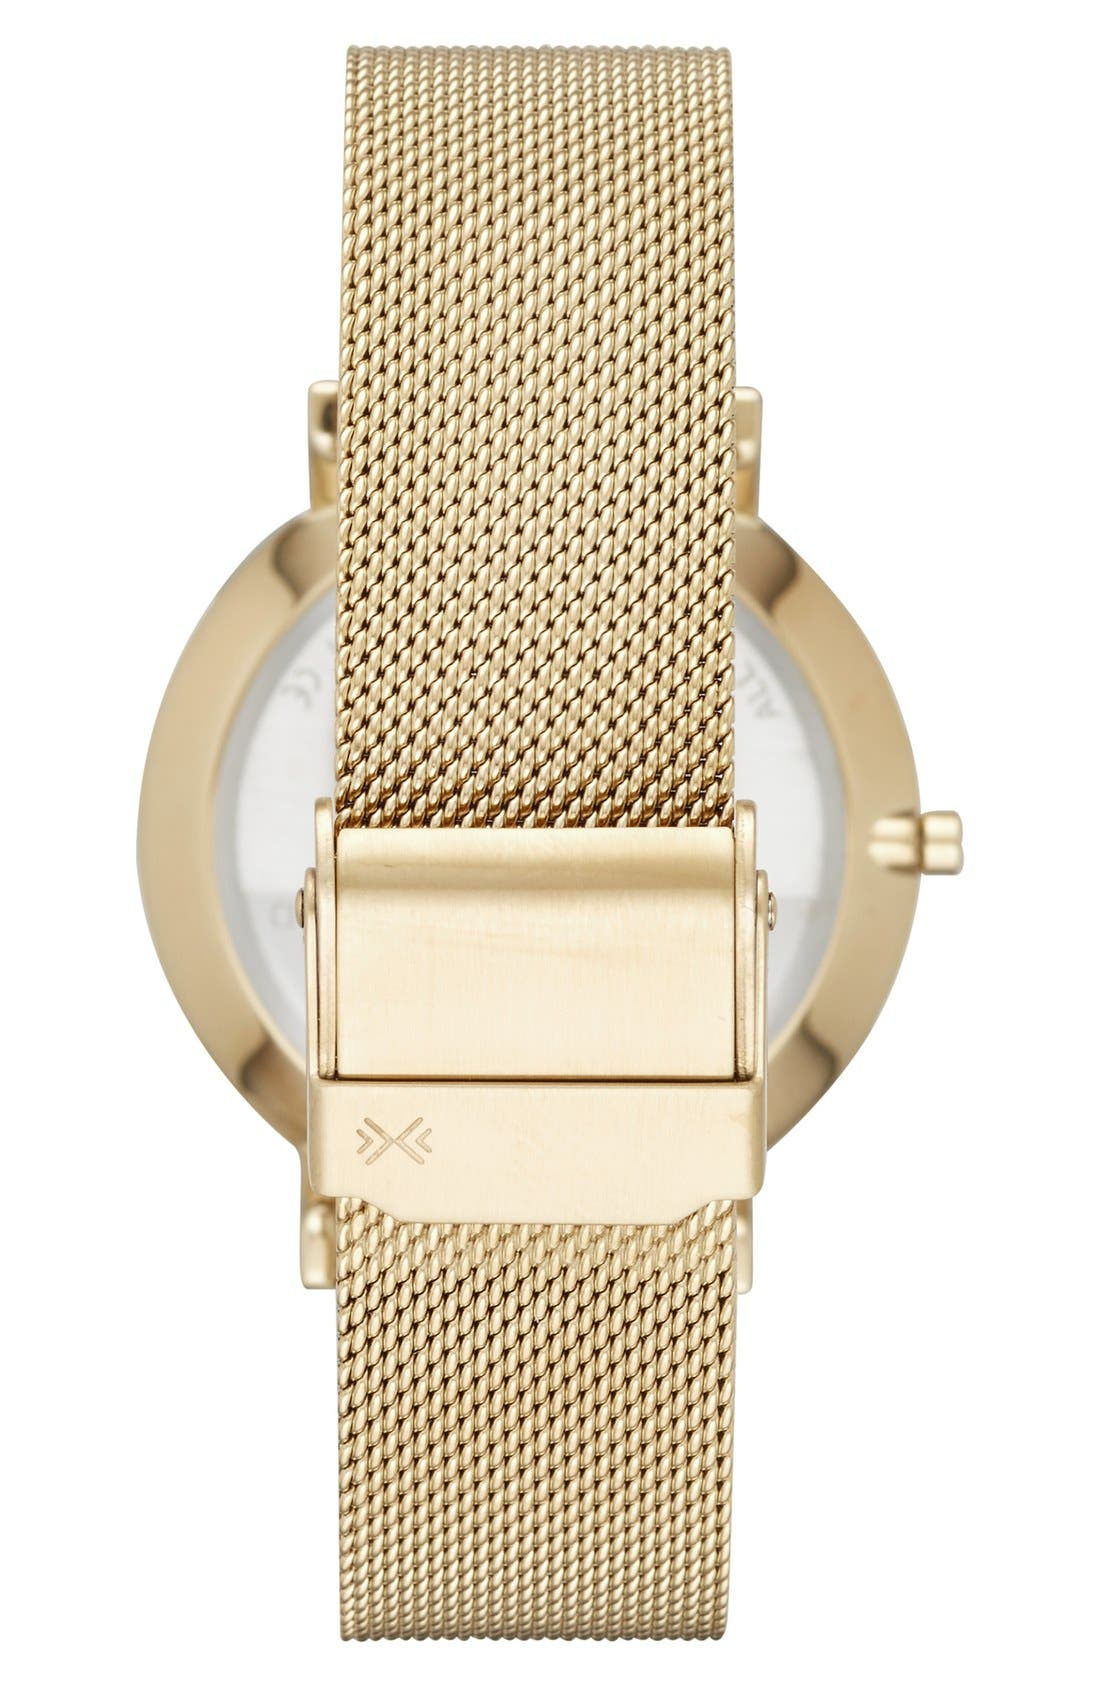 'Hald' Round Mesh Strap Watch, 34mm,                             Alternate thumbnail 2, color,                             710